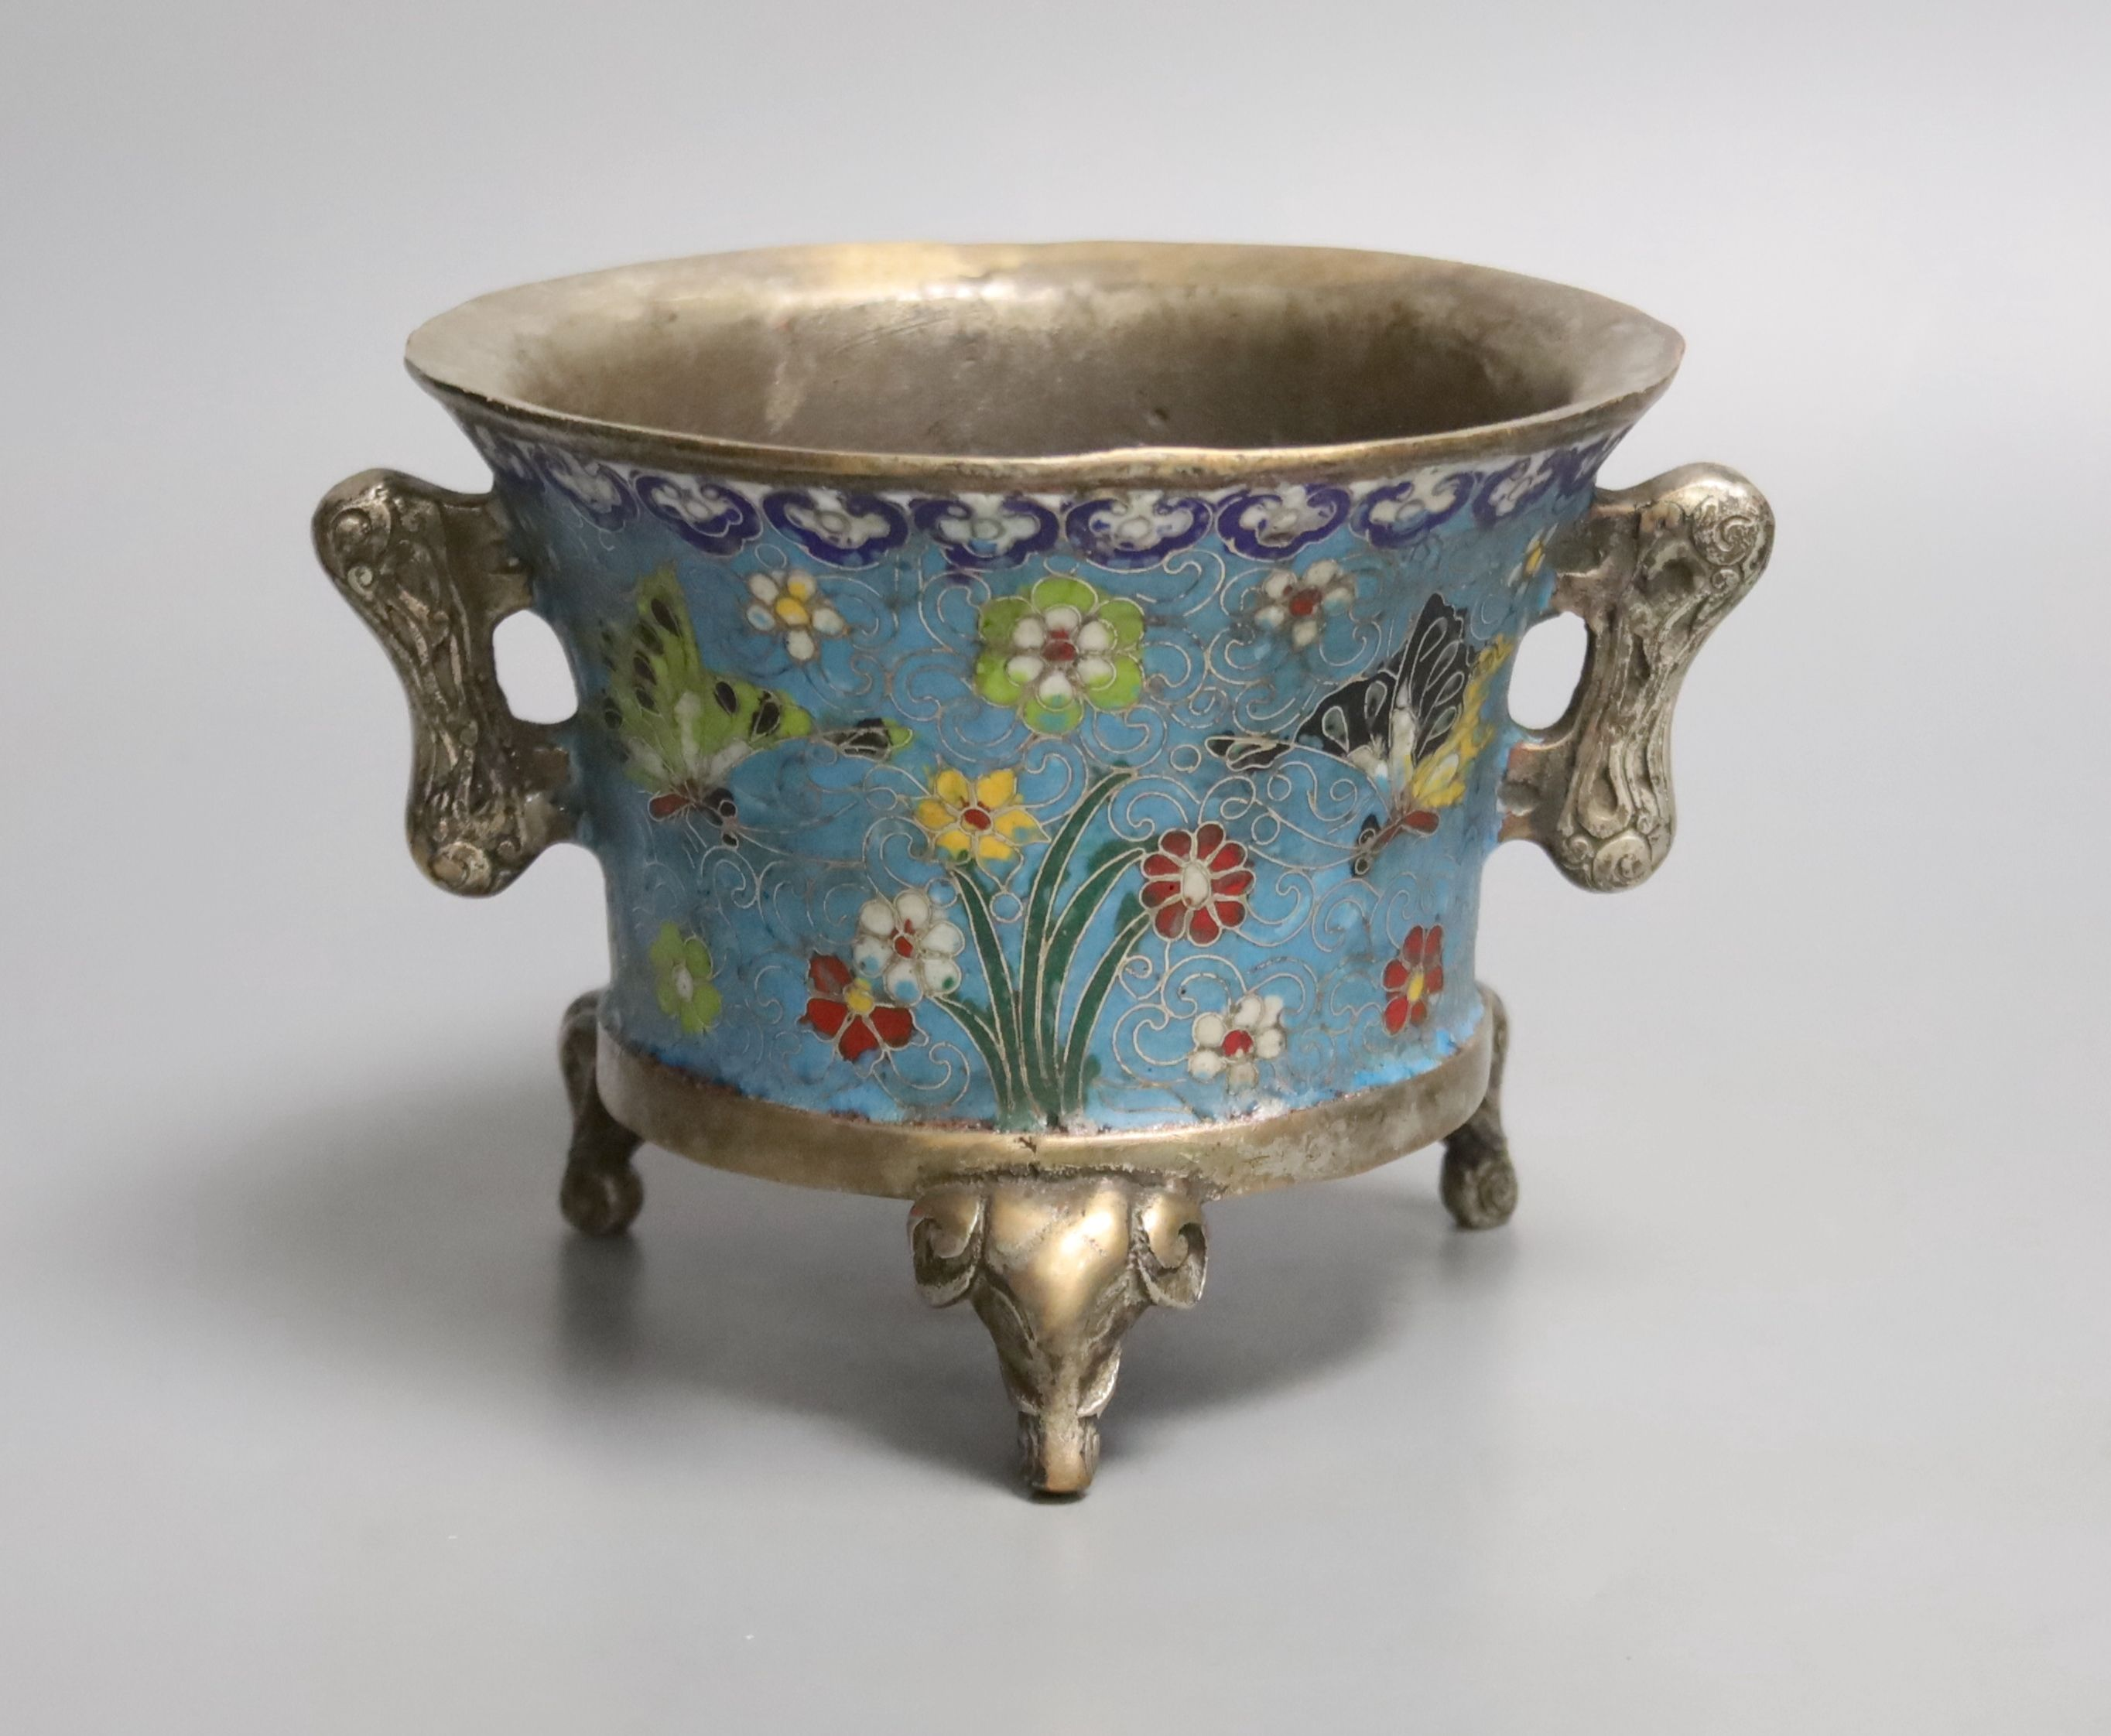 A heavy Chinese silvered bronze twin handled censer with floral decoration, a four character